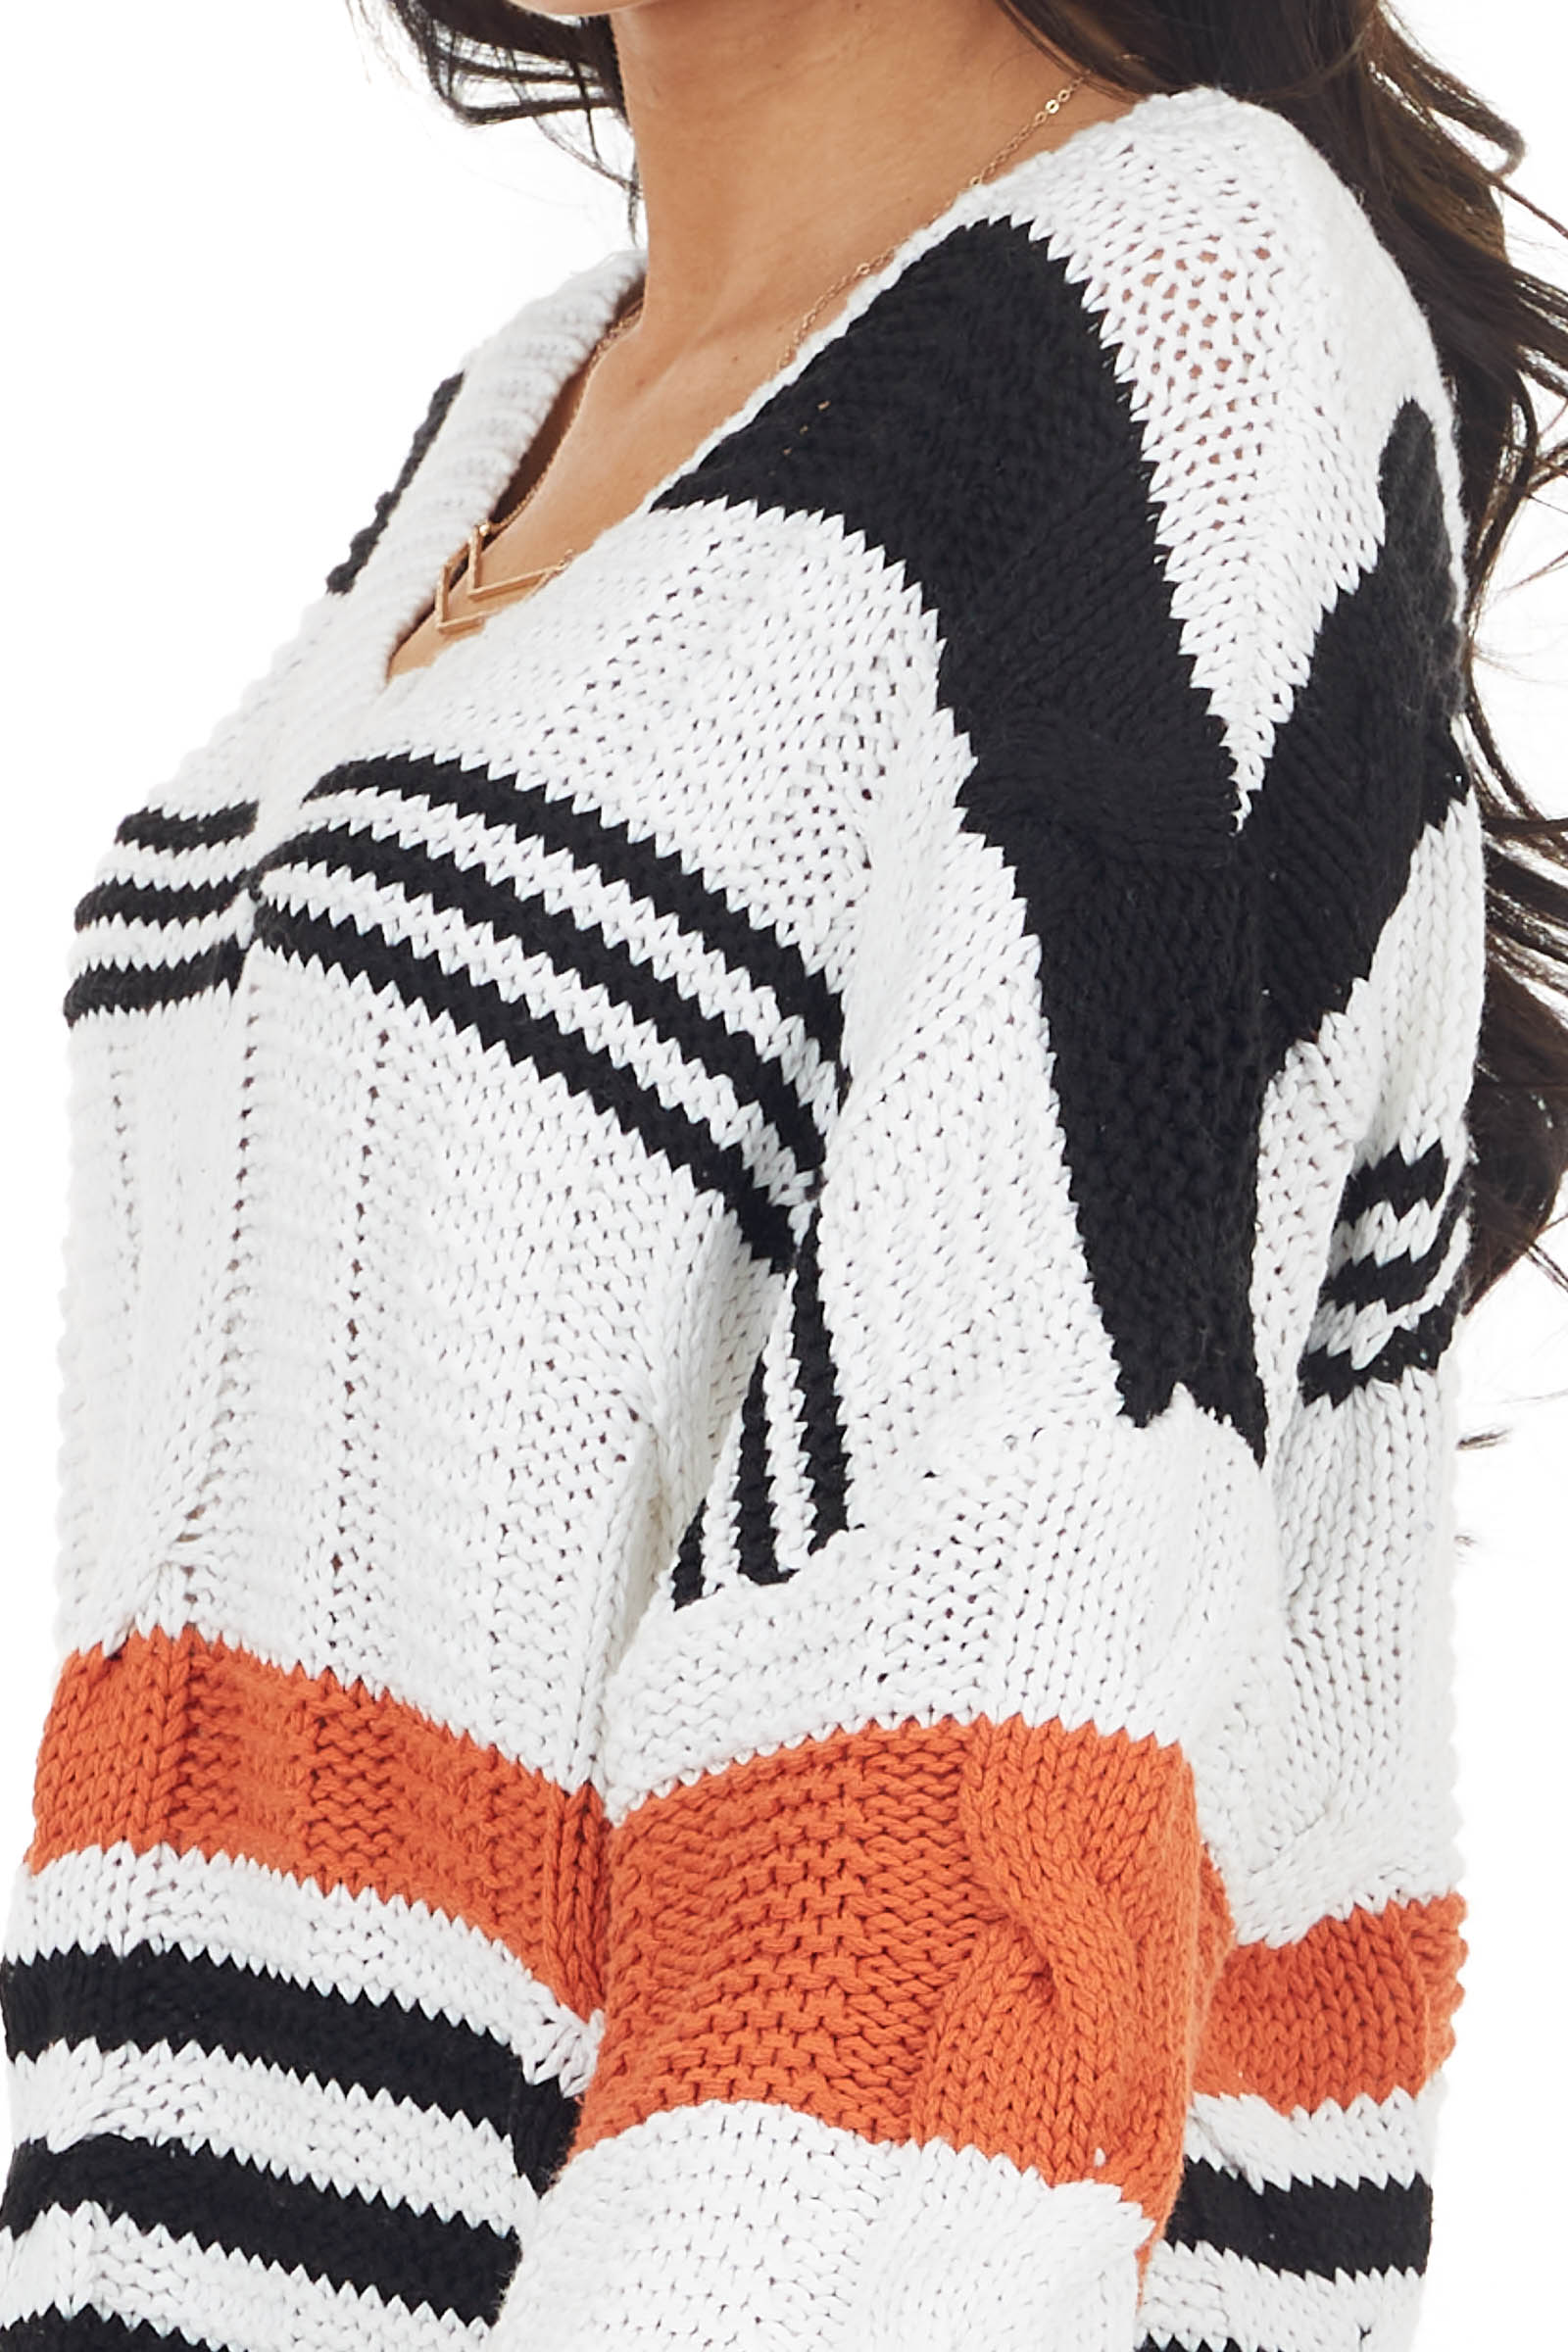 Eggshell Braided Knit Sweater with Black and Rust Stripes